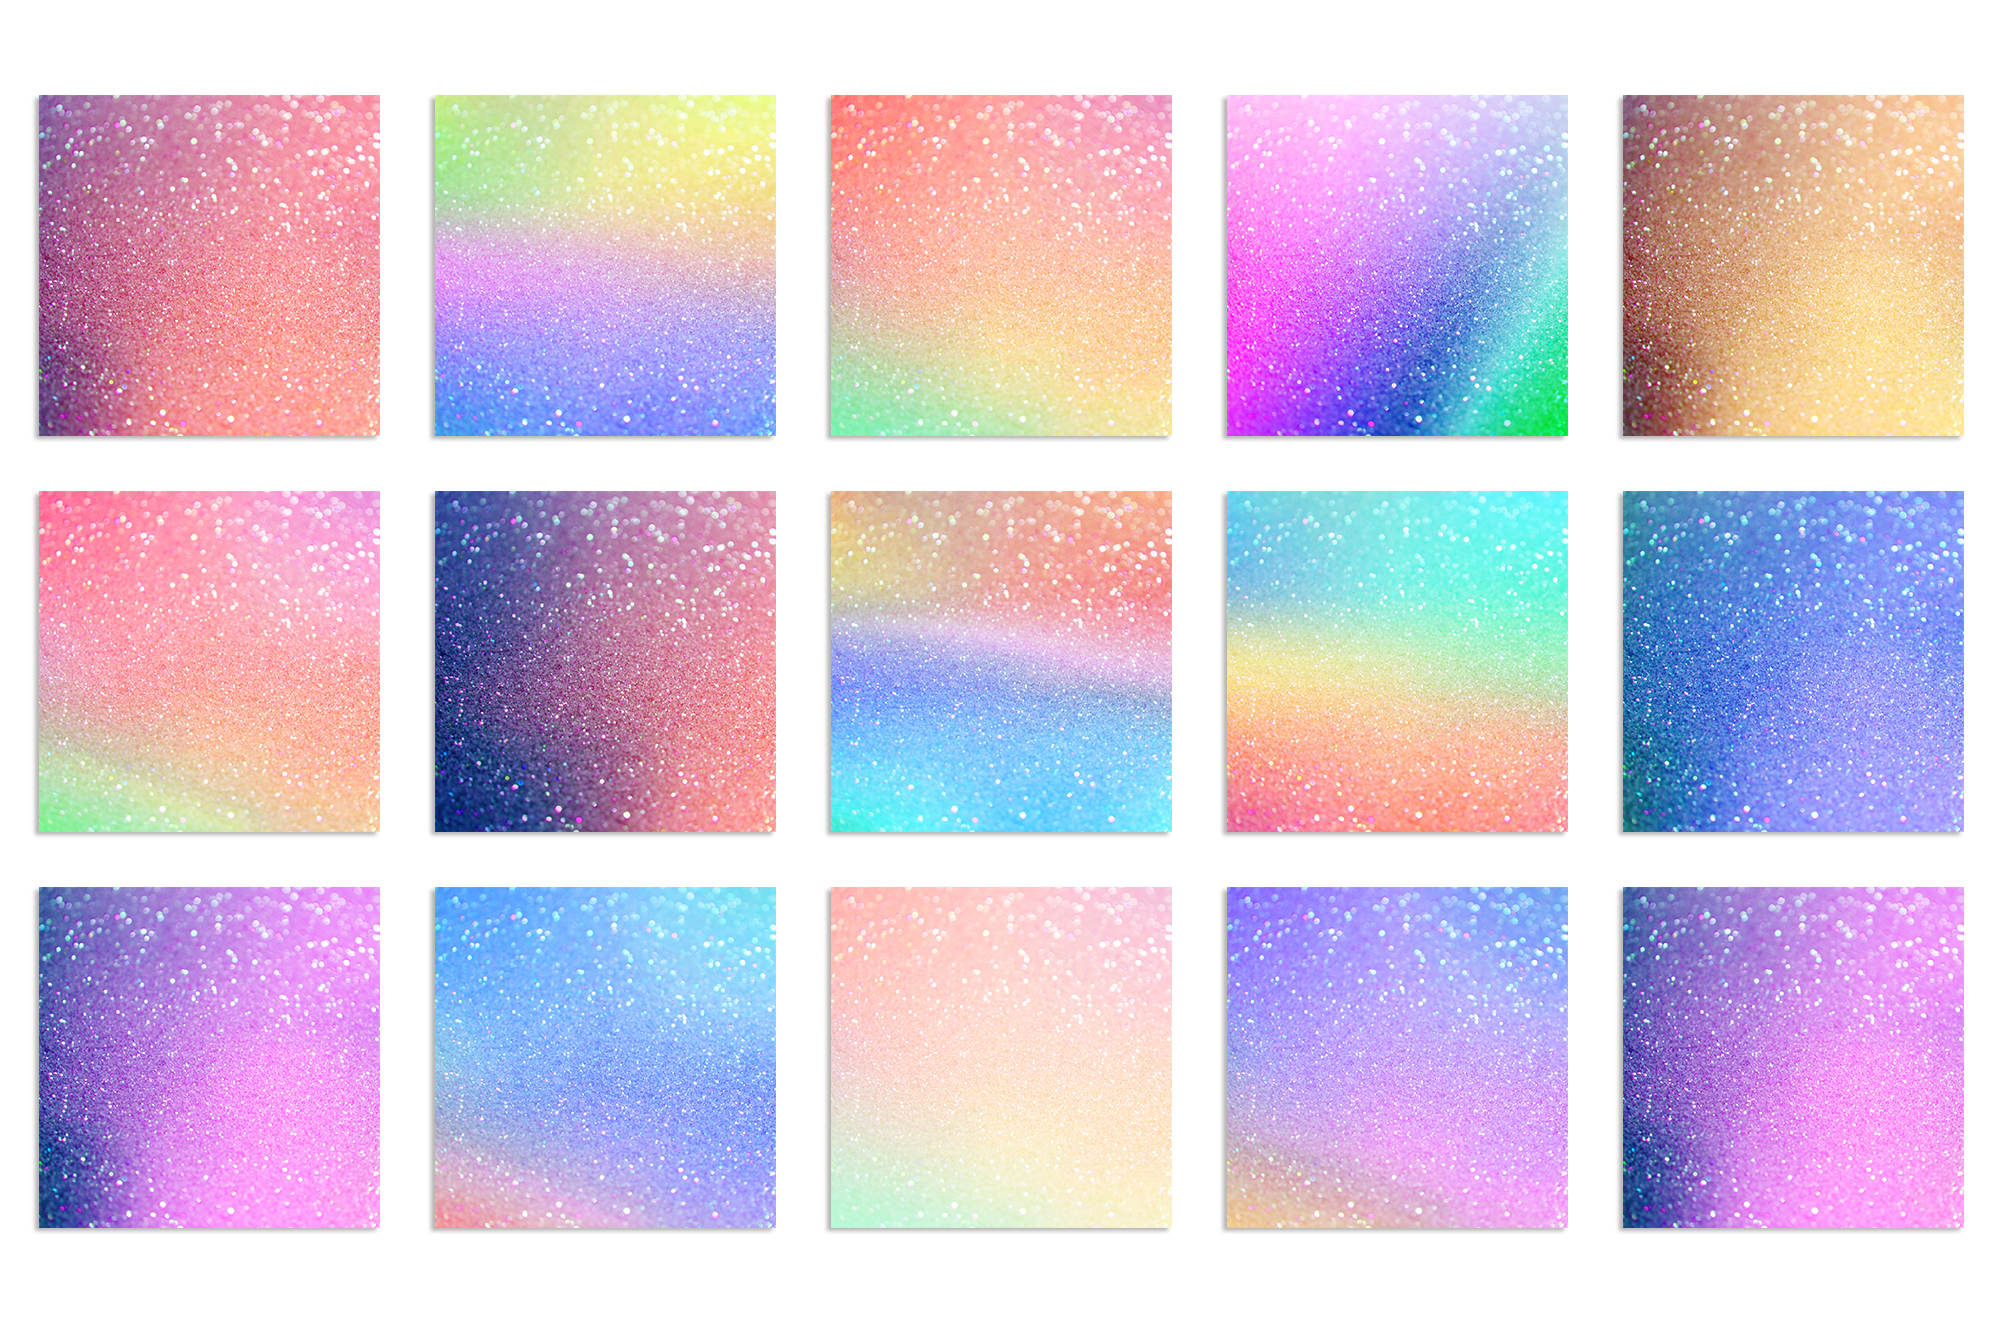 Iridescent and Glitter Textures example image 3